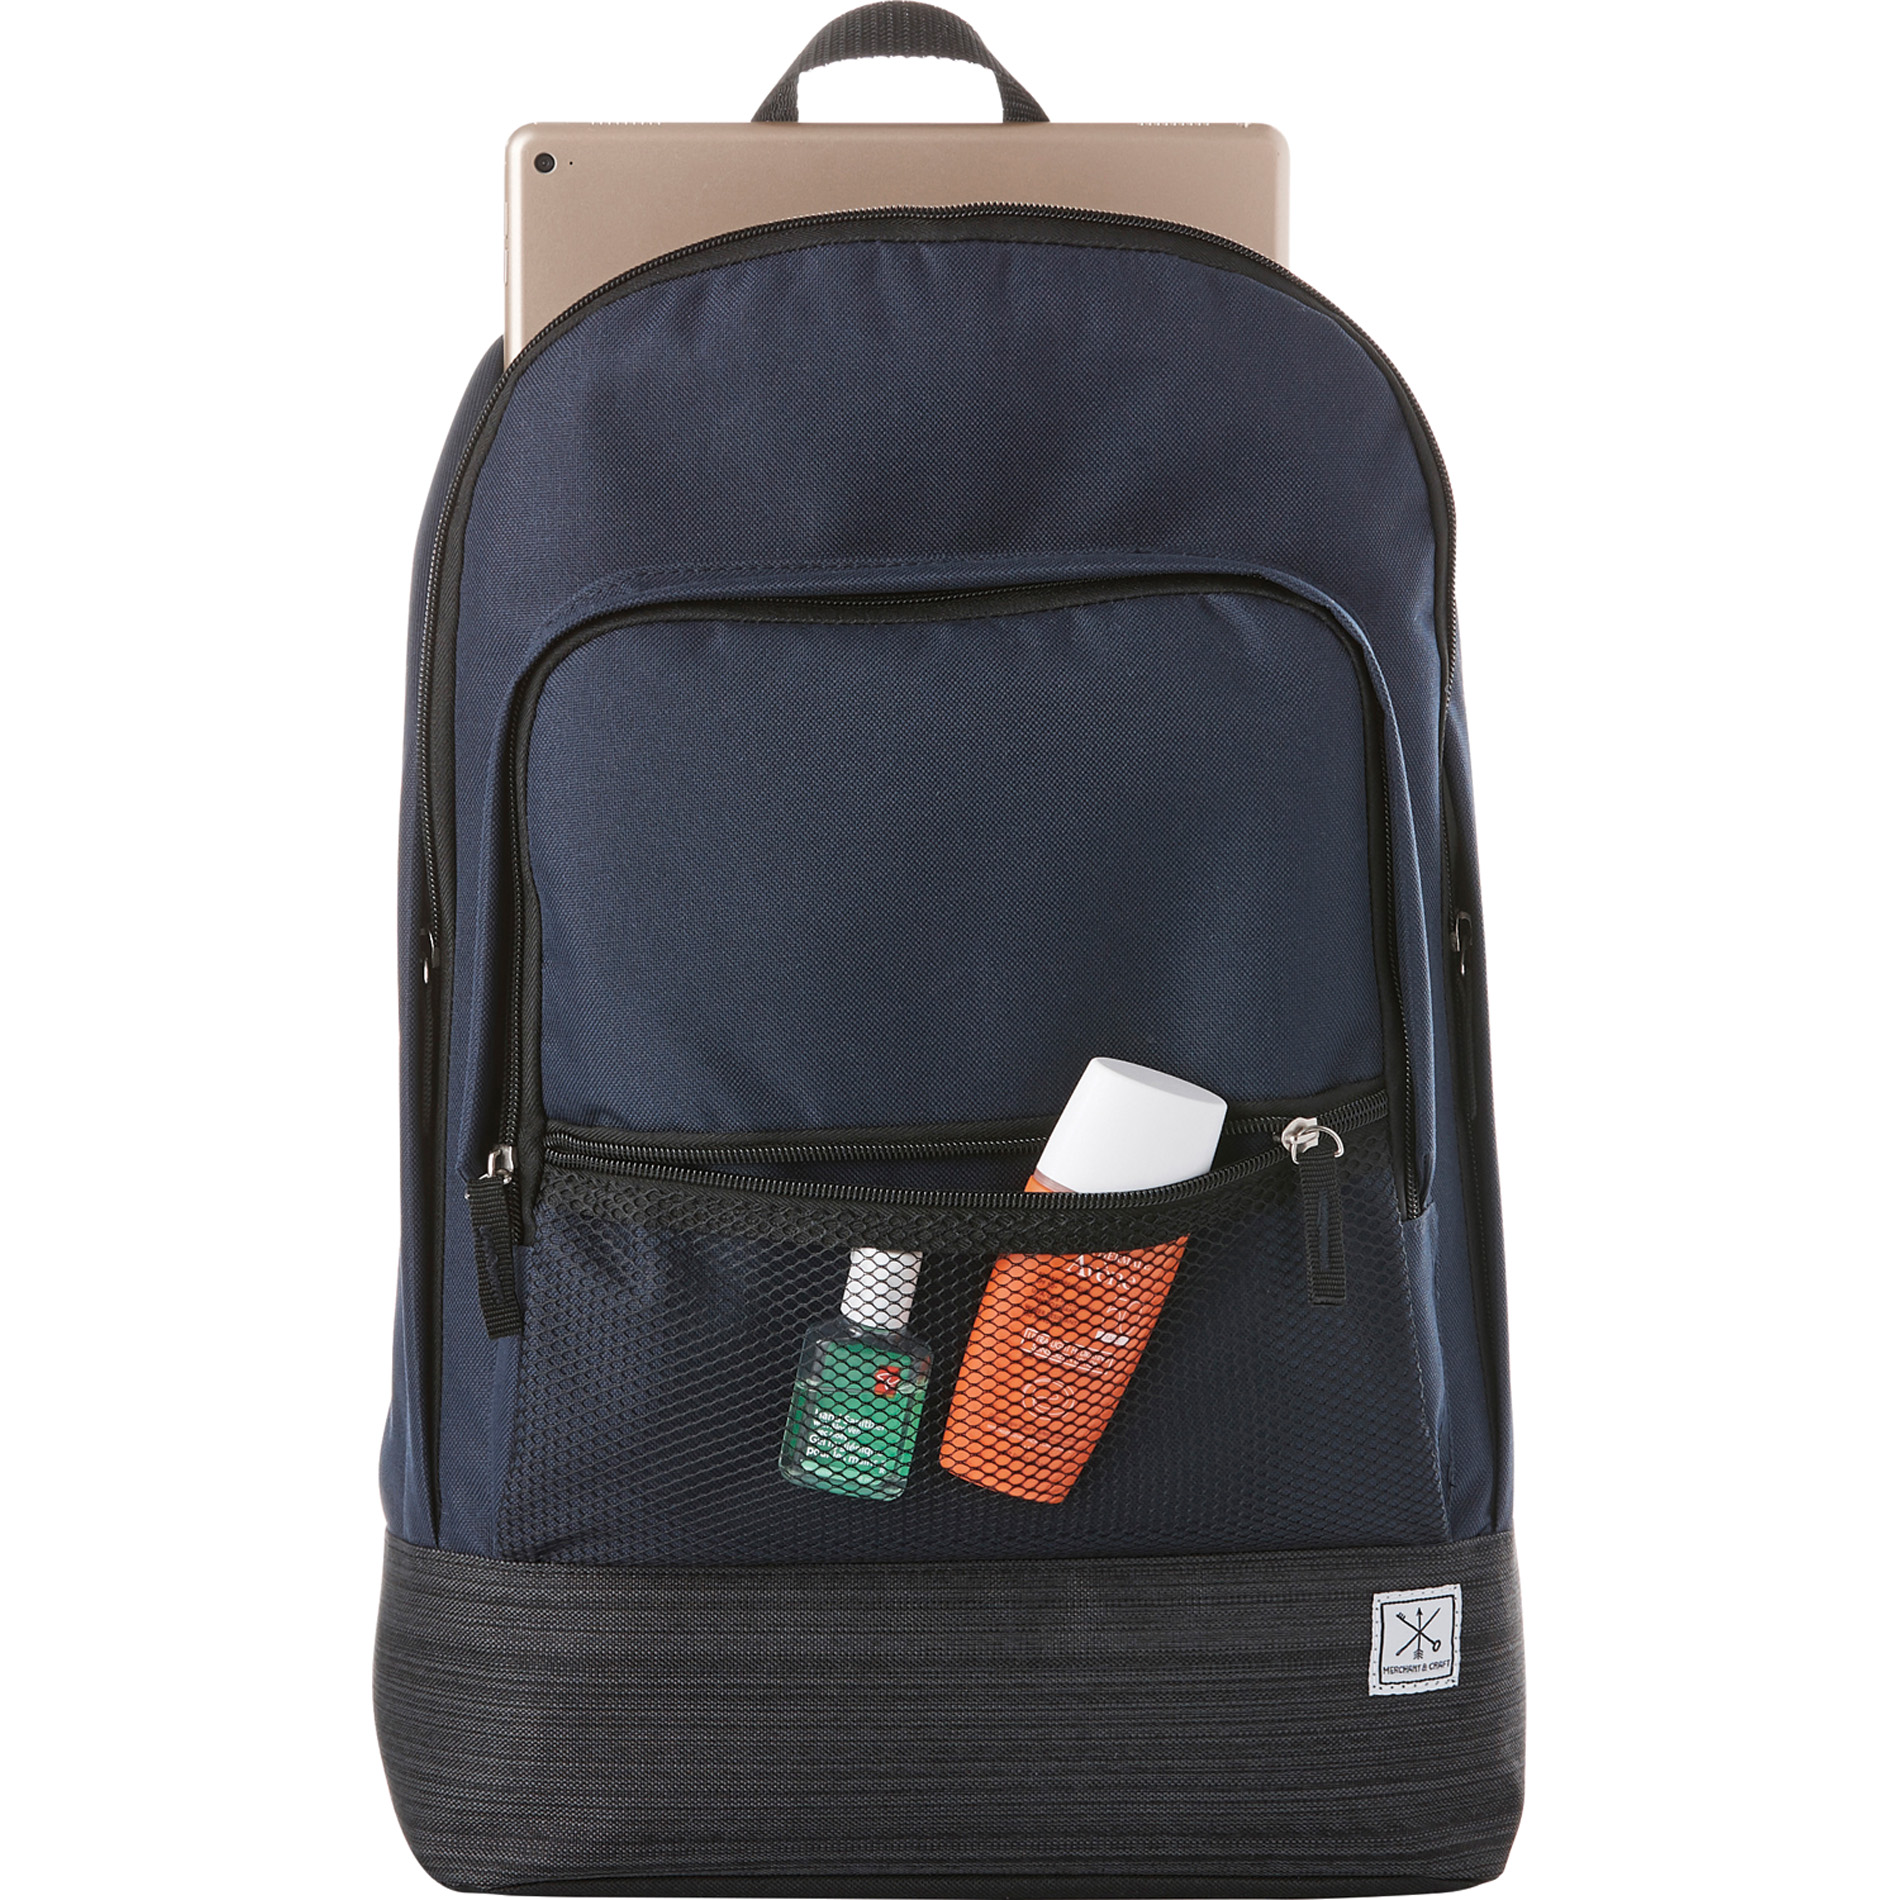 "Merchant & Craft 3750-14 - Chase 15"" Computer Backpack"